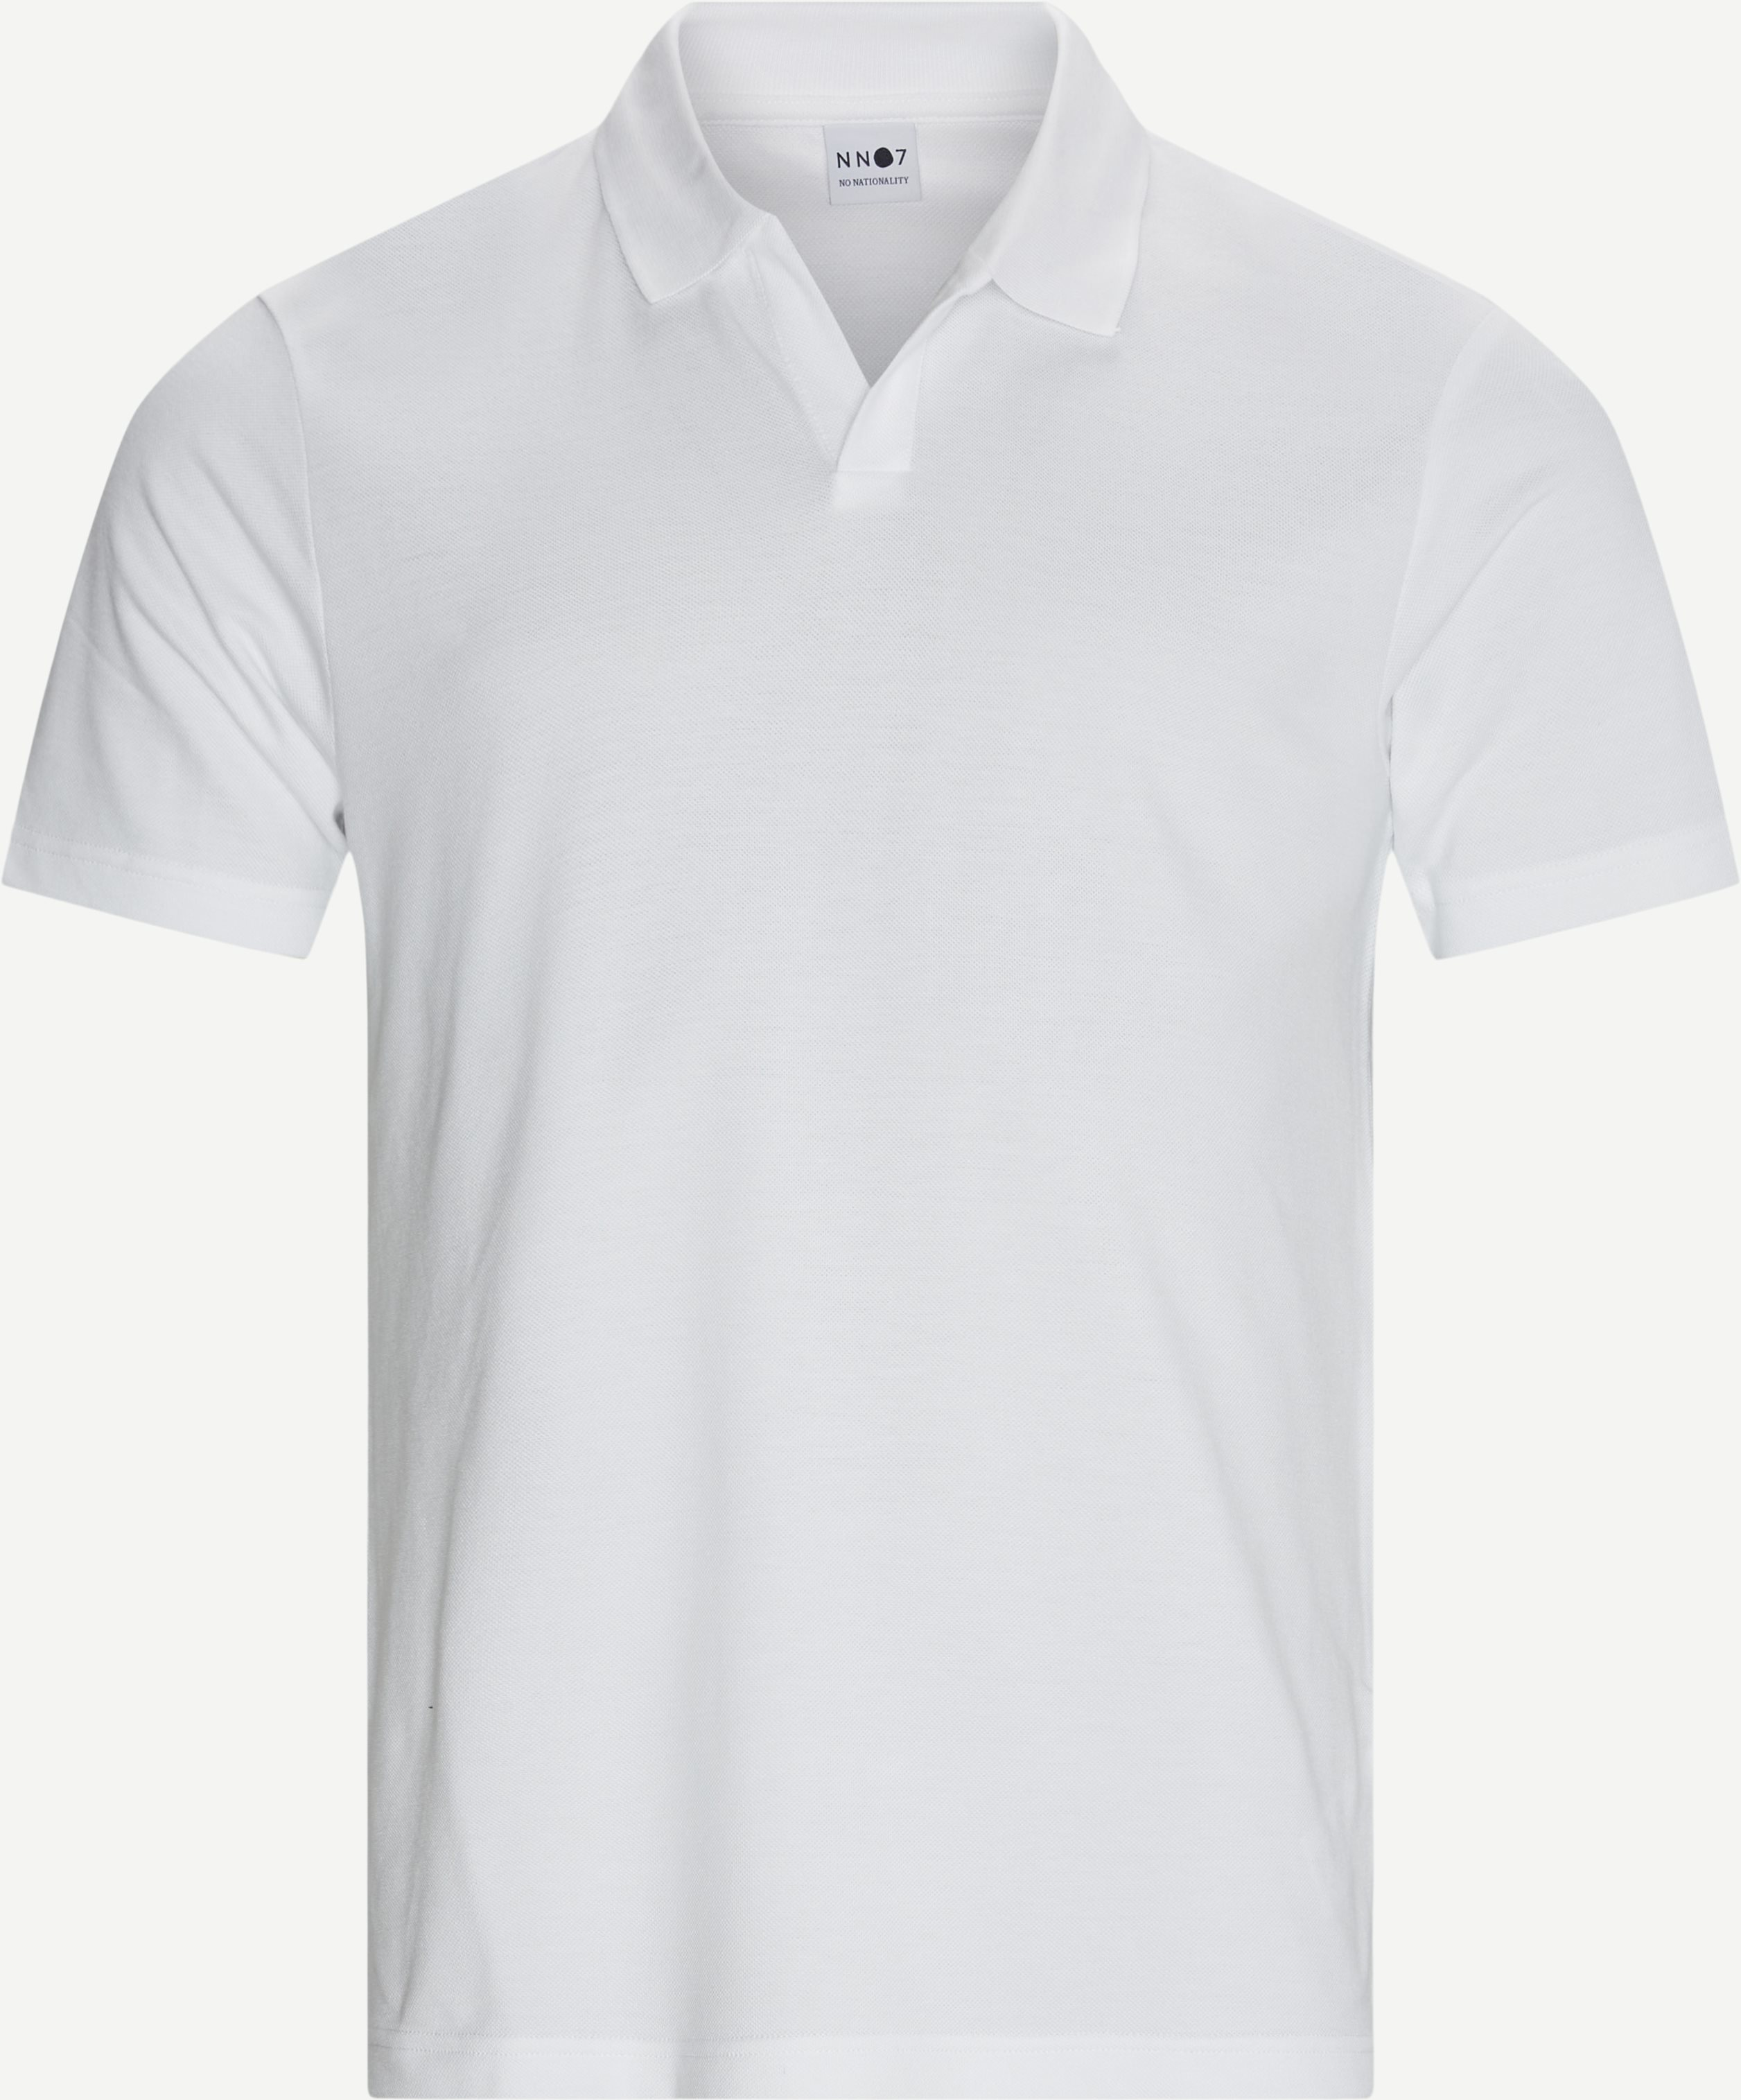 Paul Polo T-shirt - T-shirts - Regular - Vit